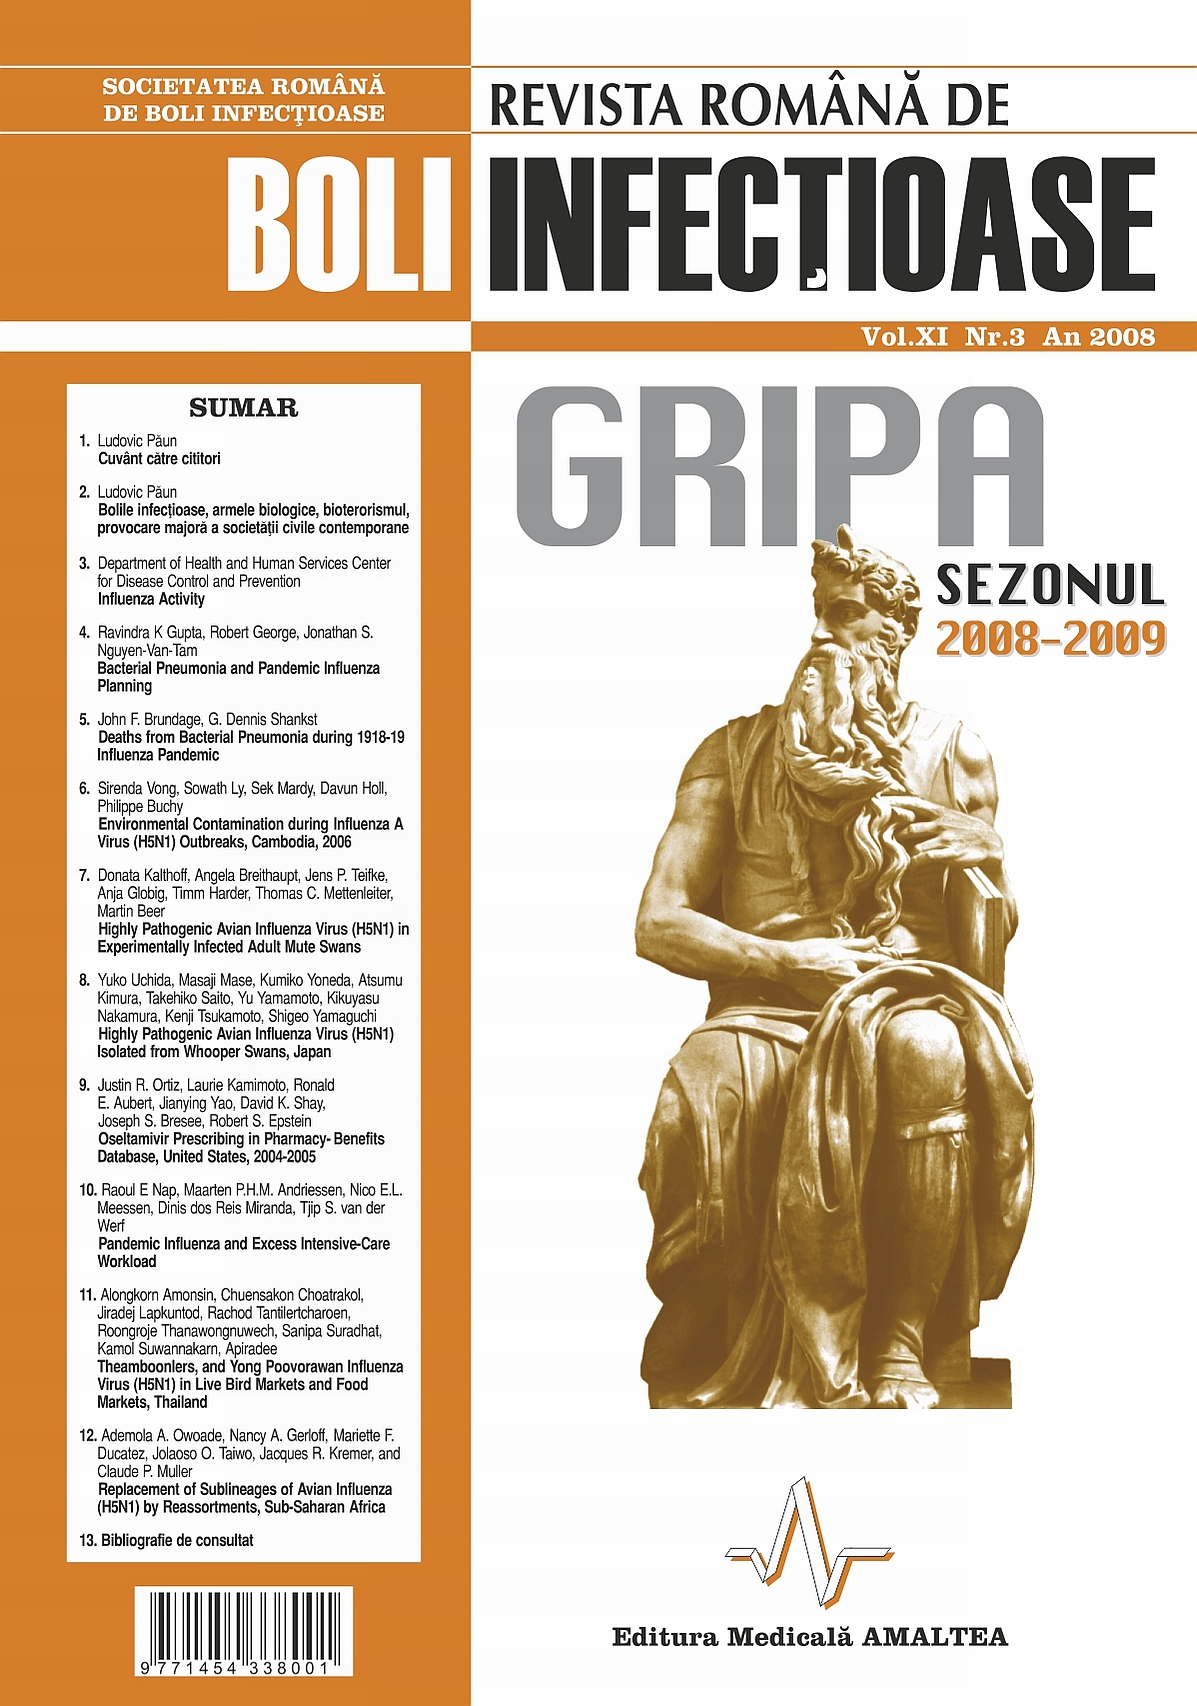 Revista Romana de Boli Infectioase | Vol. XI, No. 3, 2008